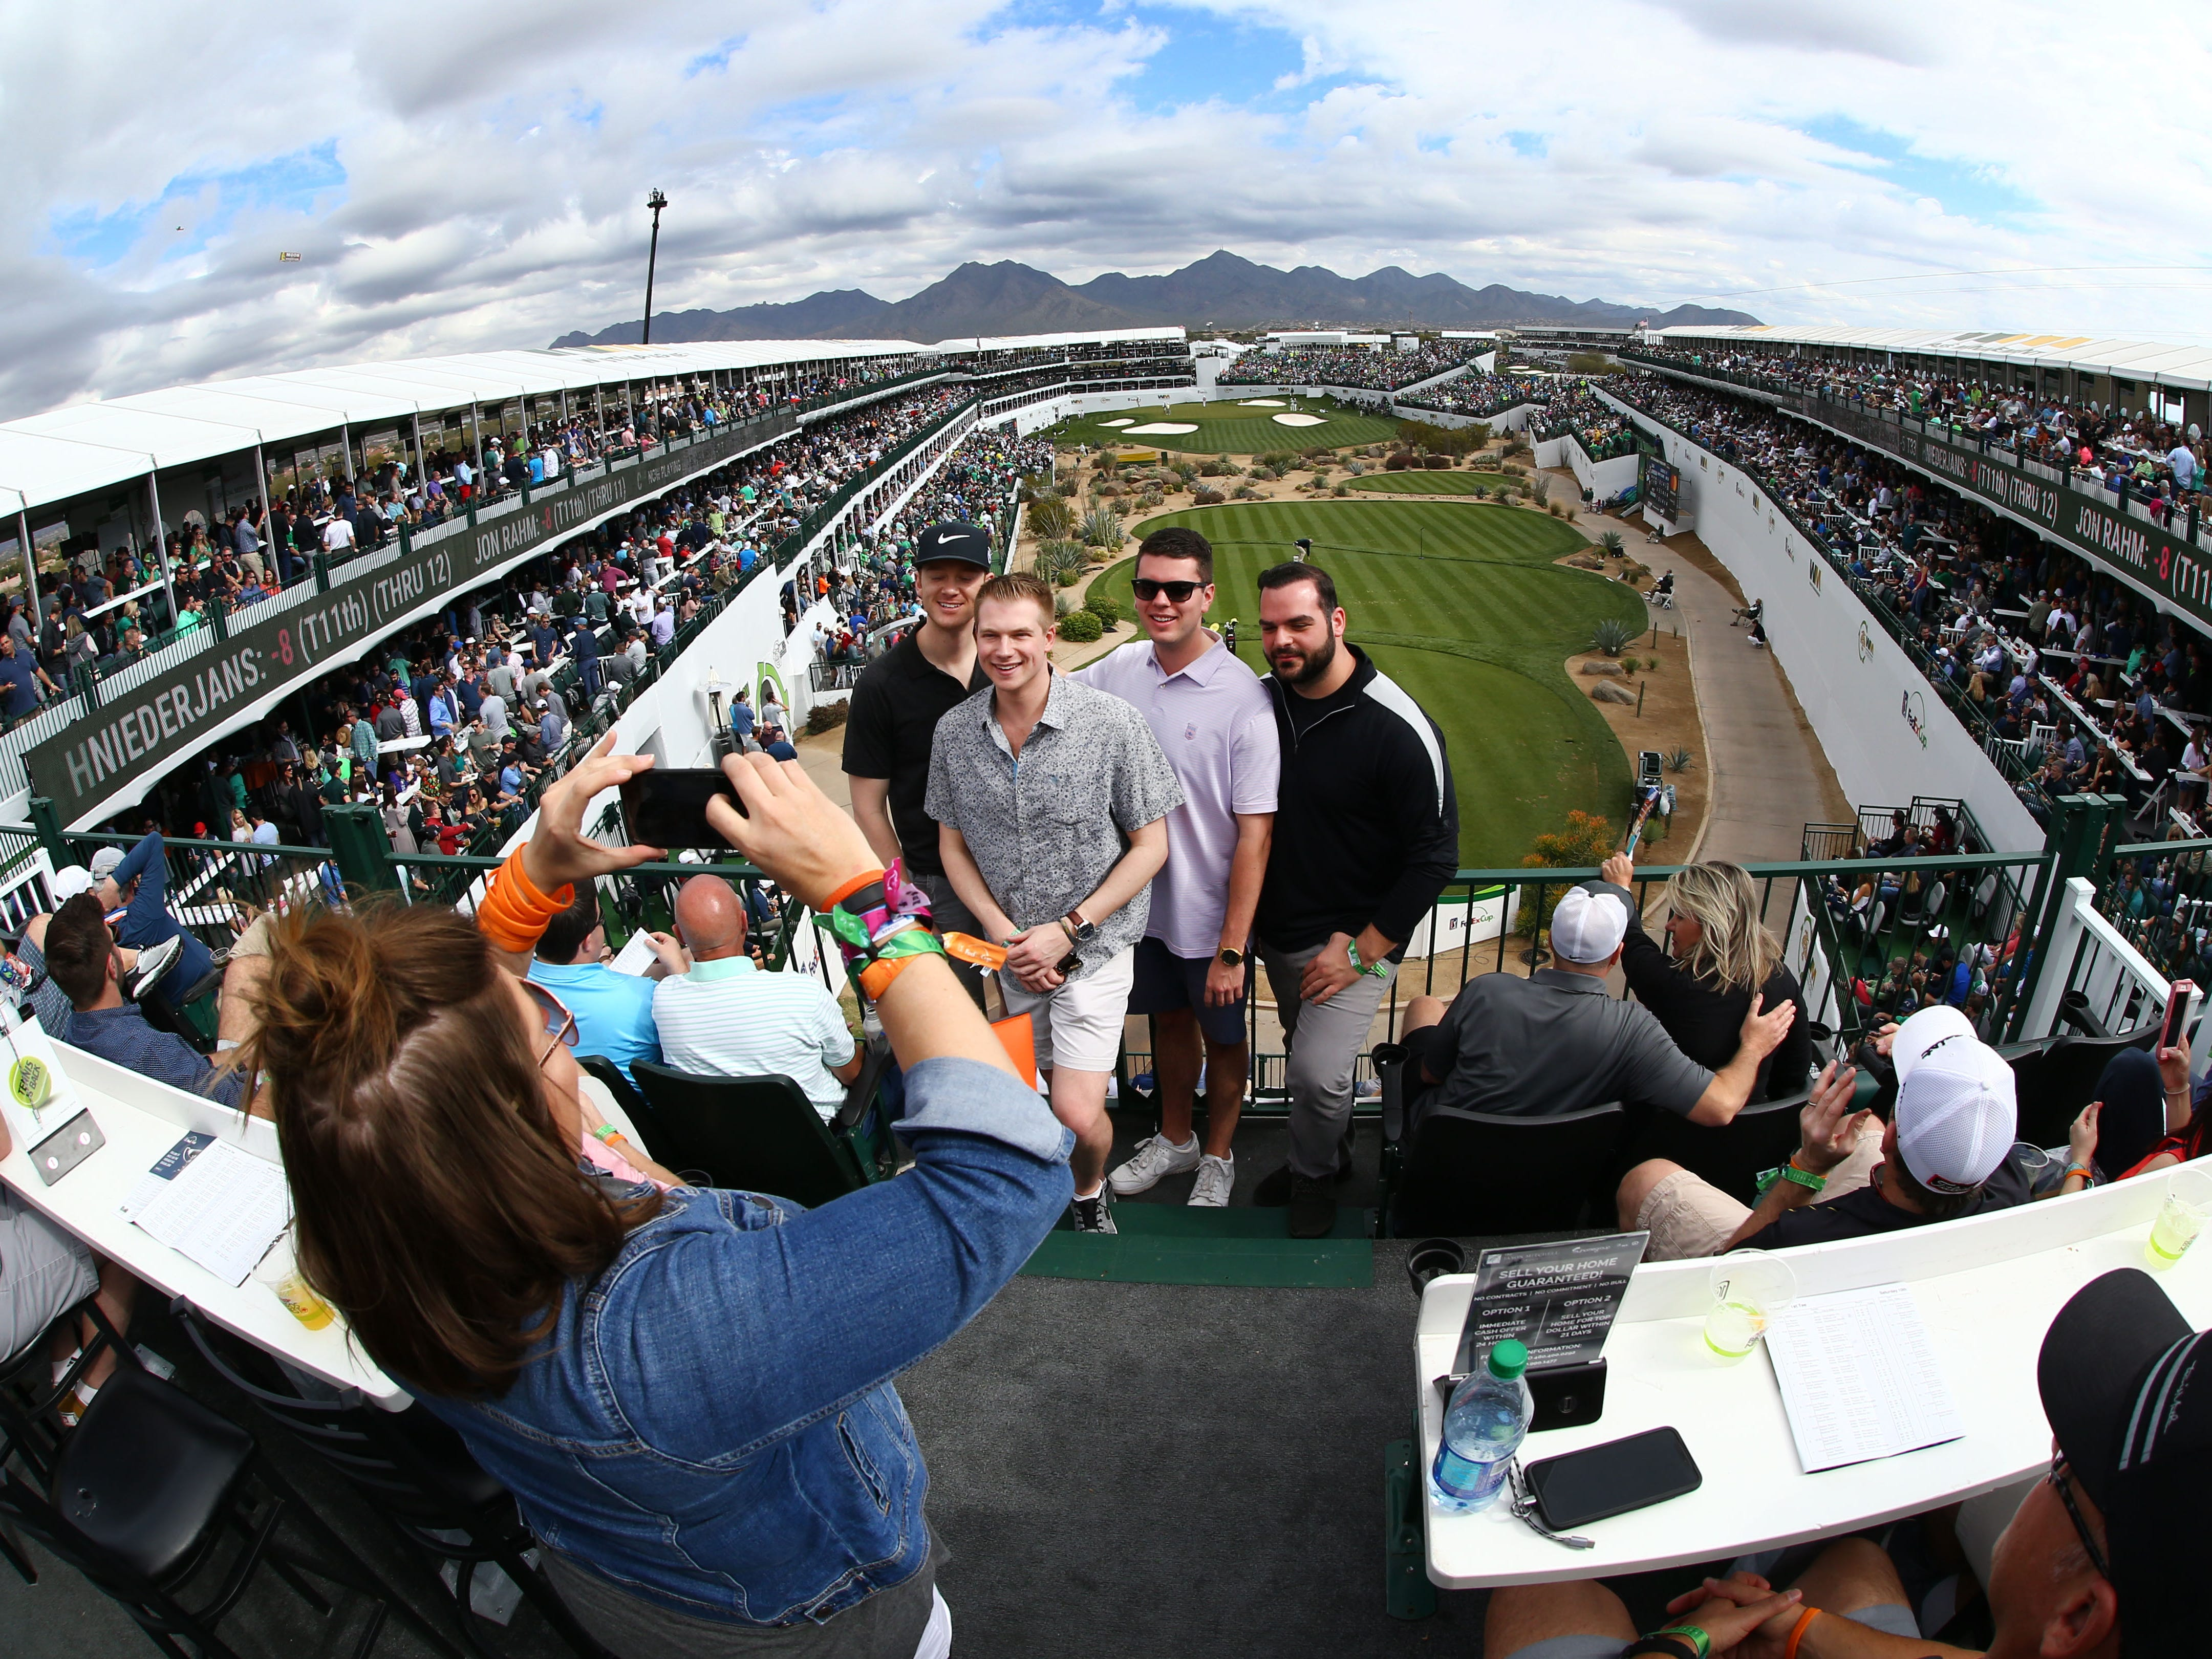 Corporate suite guests get a third story, first class view of the infamous par-3, 16th hole during third round action on Feb. 2 during the Waste Management Phoenix Open at the TPC Scottsdale Stadium Course.